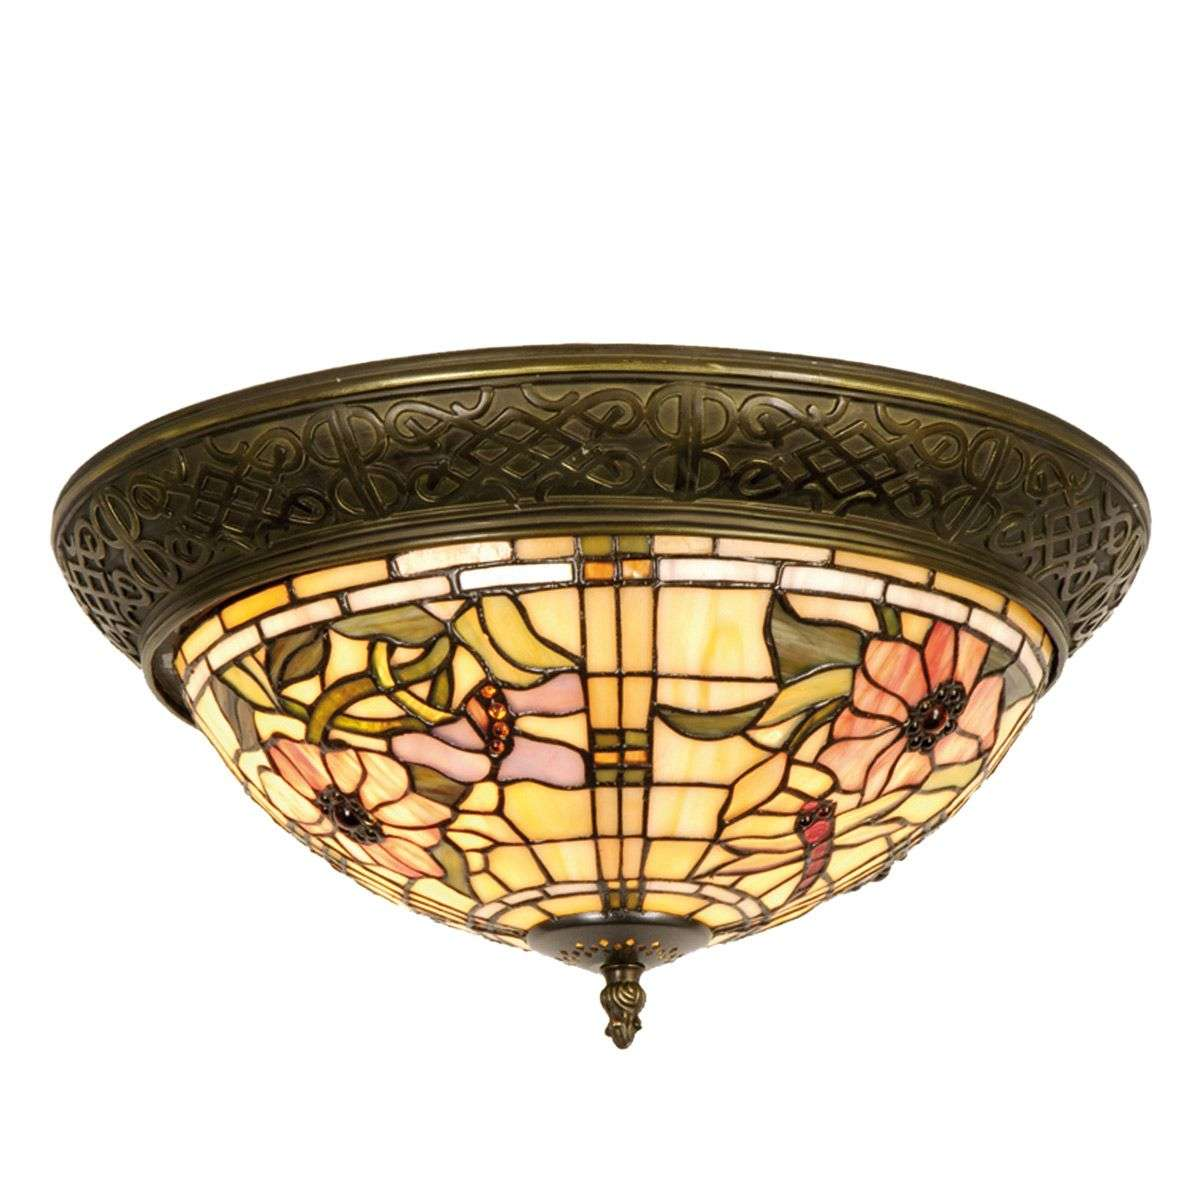 Ceiling Lights Lantern Style : Ceiling light mira in the tiffany style lights